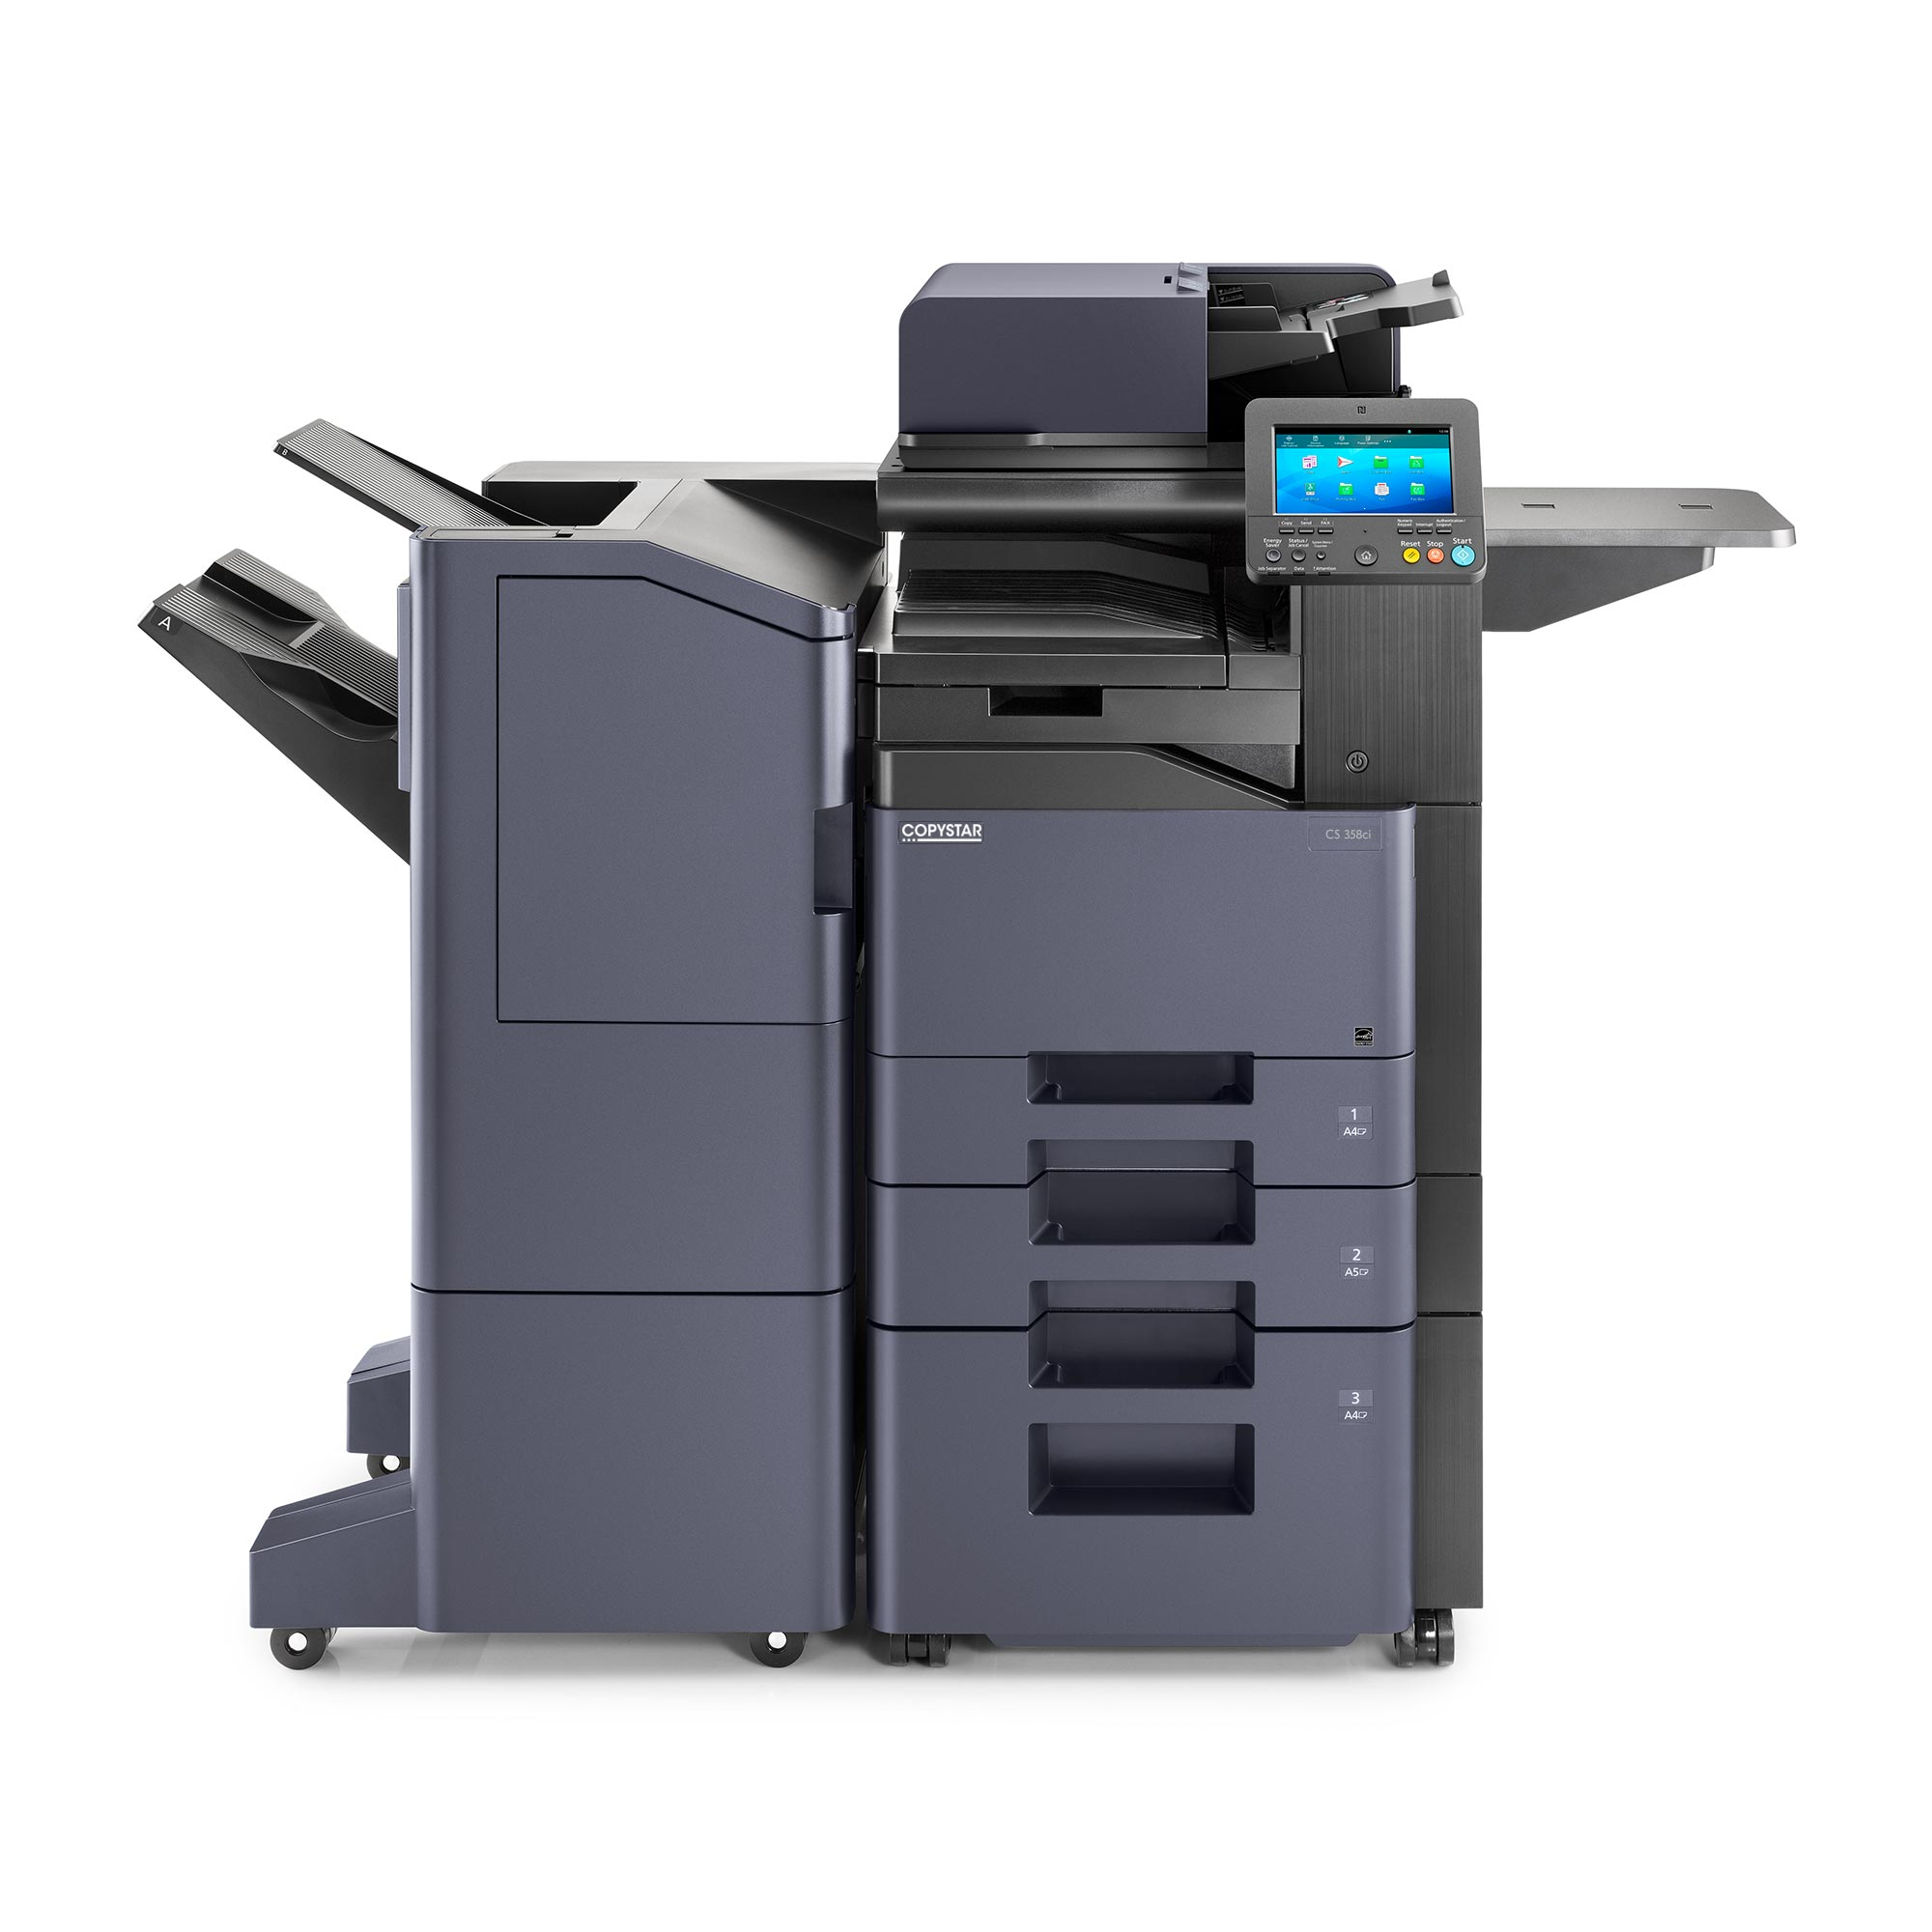 Kyocera CS_358ci All In One Copier Sales 55316